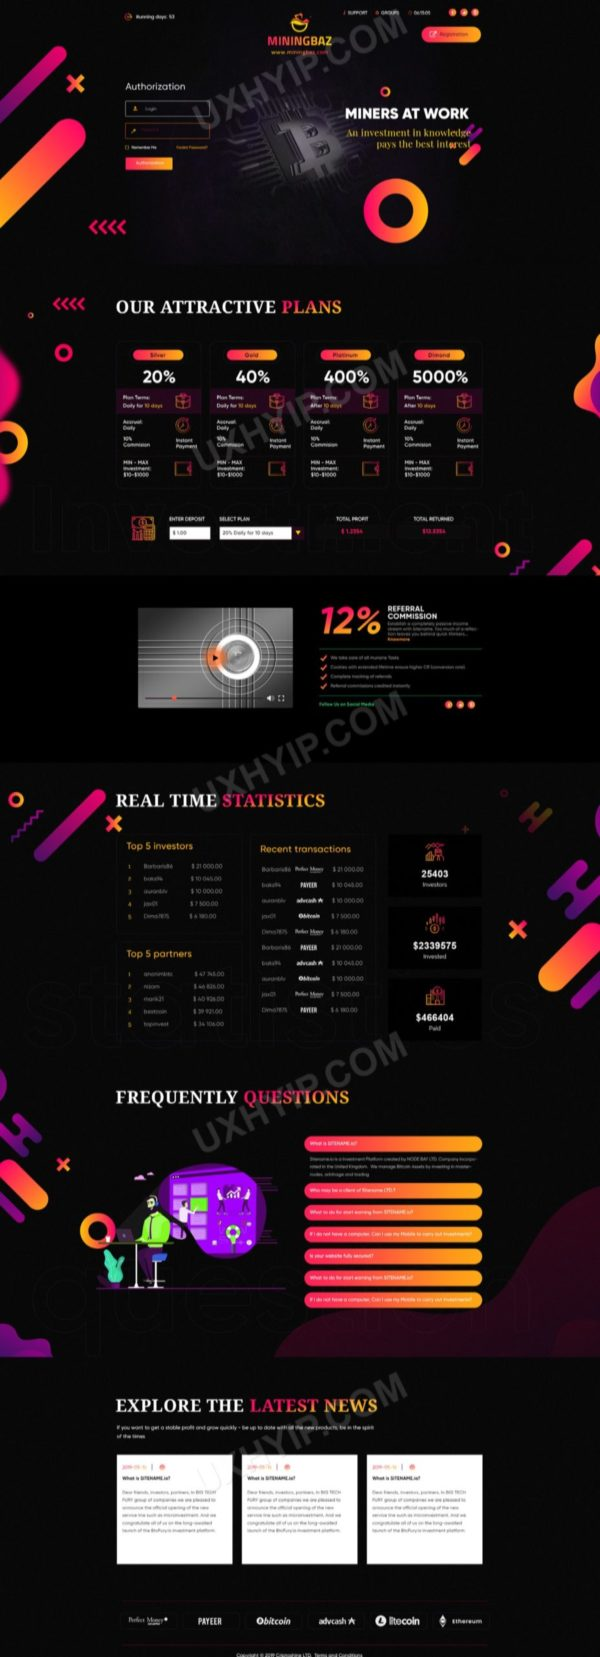 HYIP Template - Investment Business Template MiningBaz ID 154